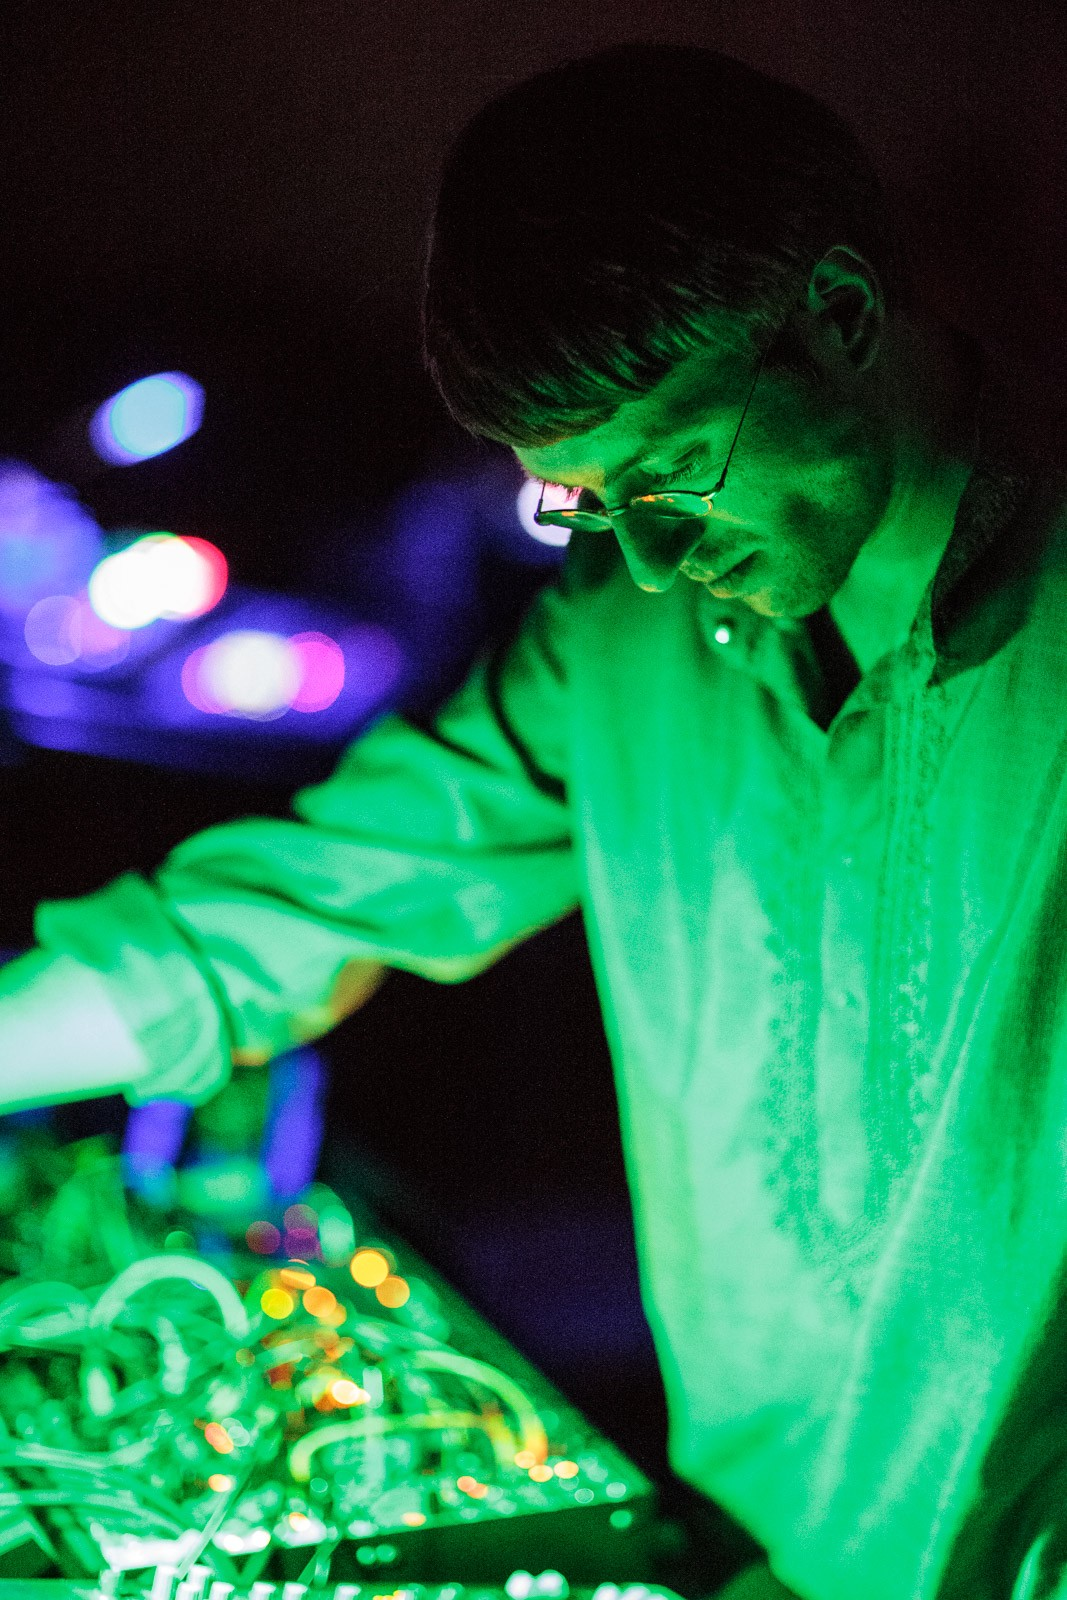 portrait of electronic musician in green light